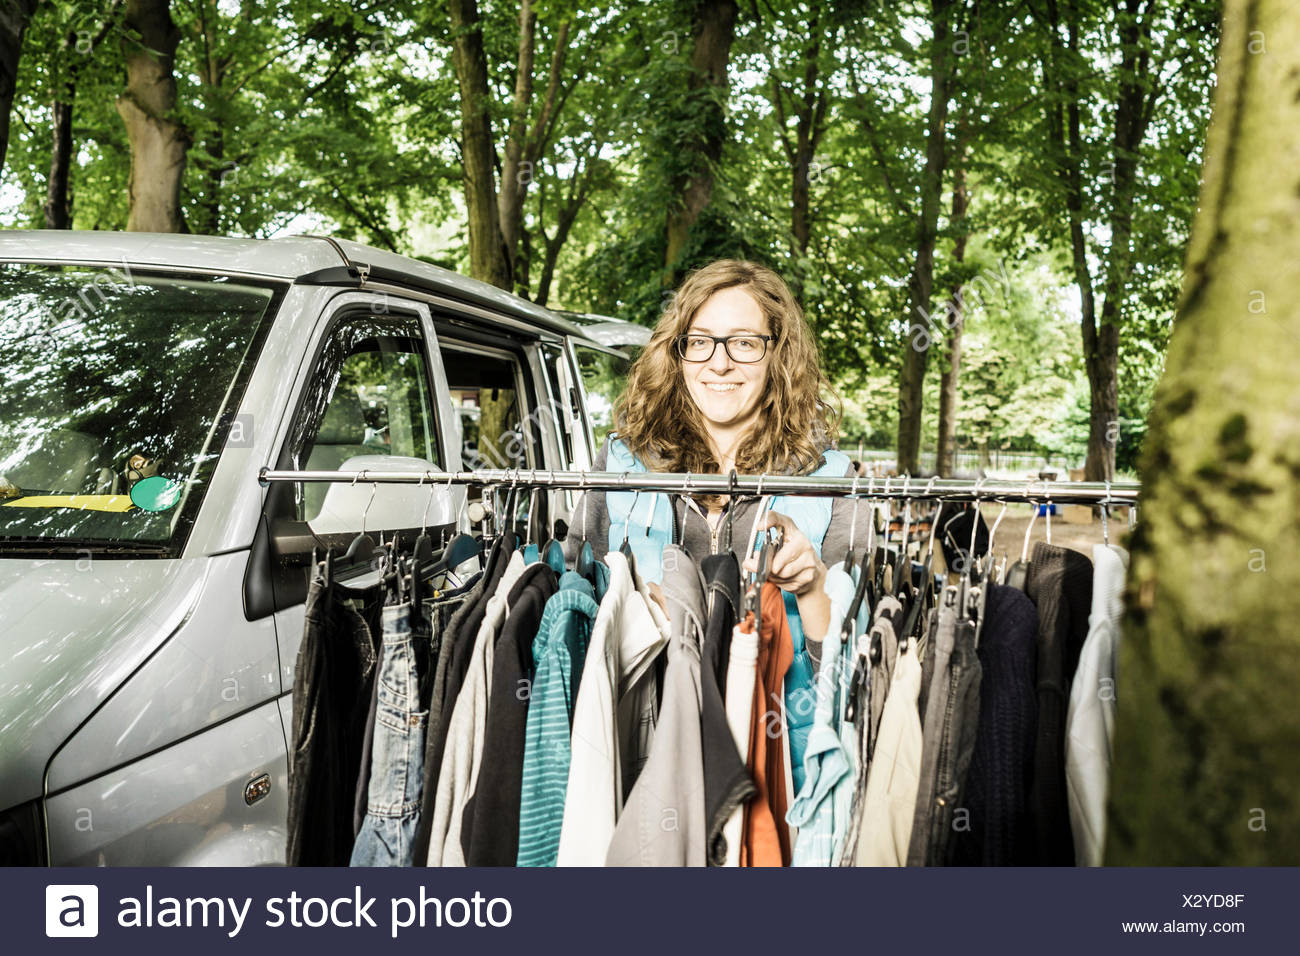 Cars Northern Ireland Used Cars Ni Second Hand Cars For: Second Hand Clothes Rail Stock Photos & Second Hand